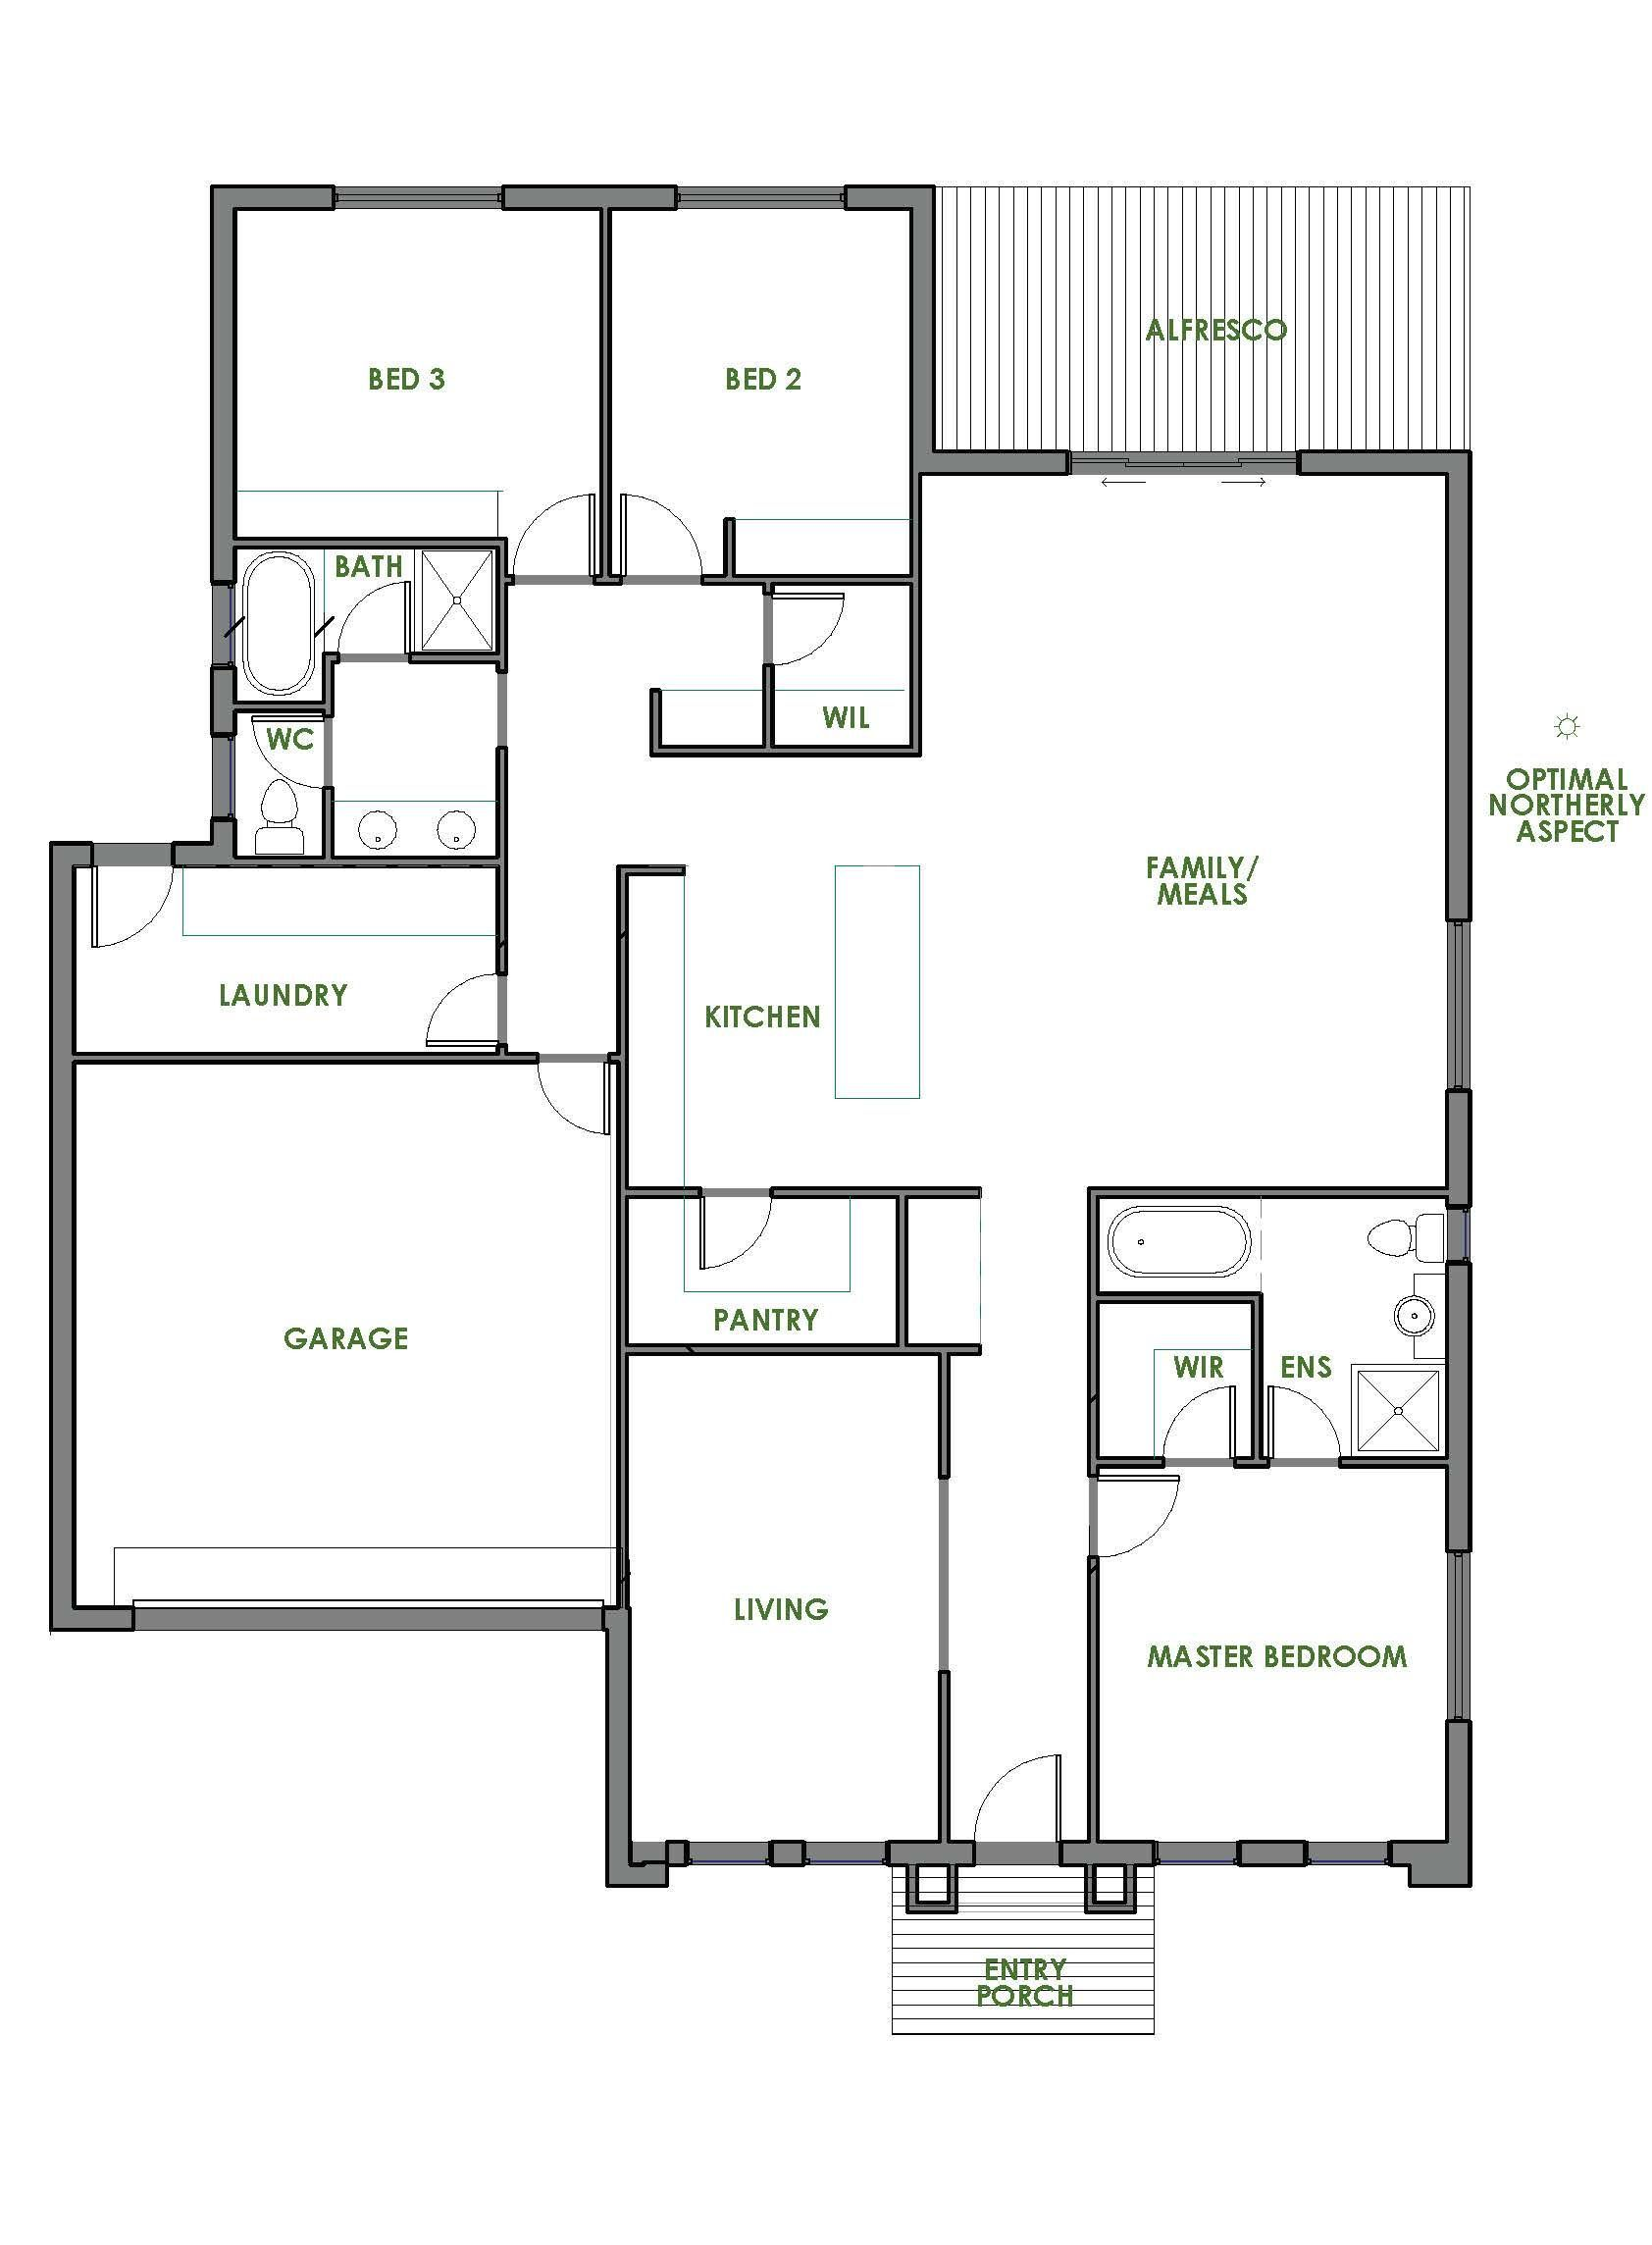 A Green Homes Design Is Always Of The Highest Quality The Wickham Energy Efficient Home Design Is One O Metal House Plans Floor Plan Layout Green House Design